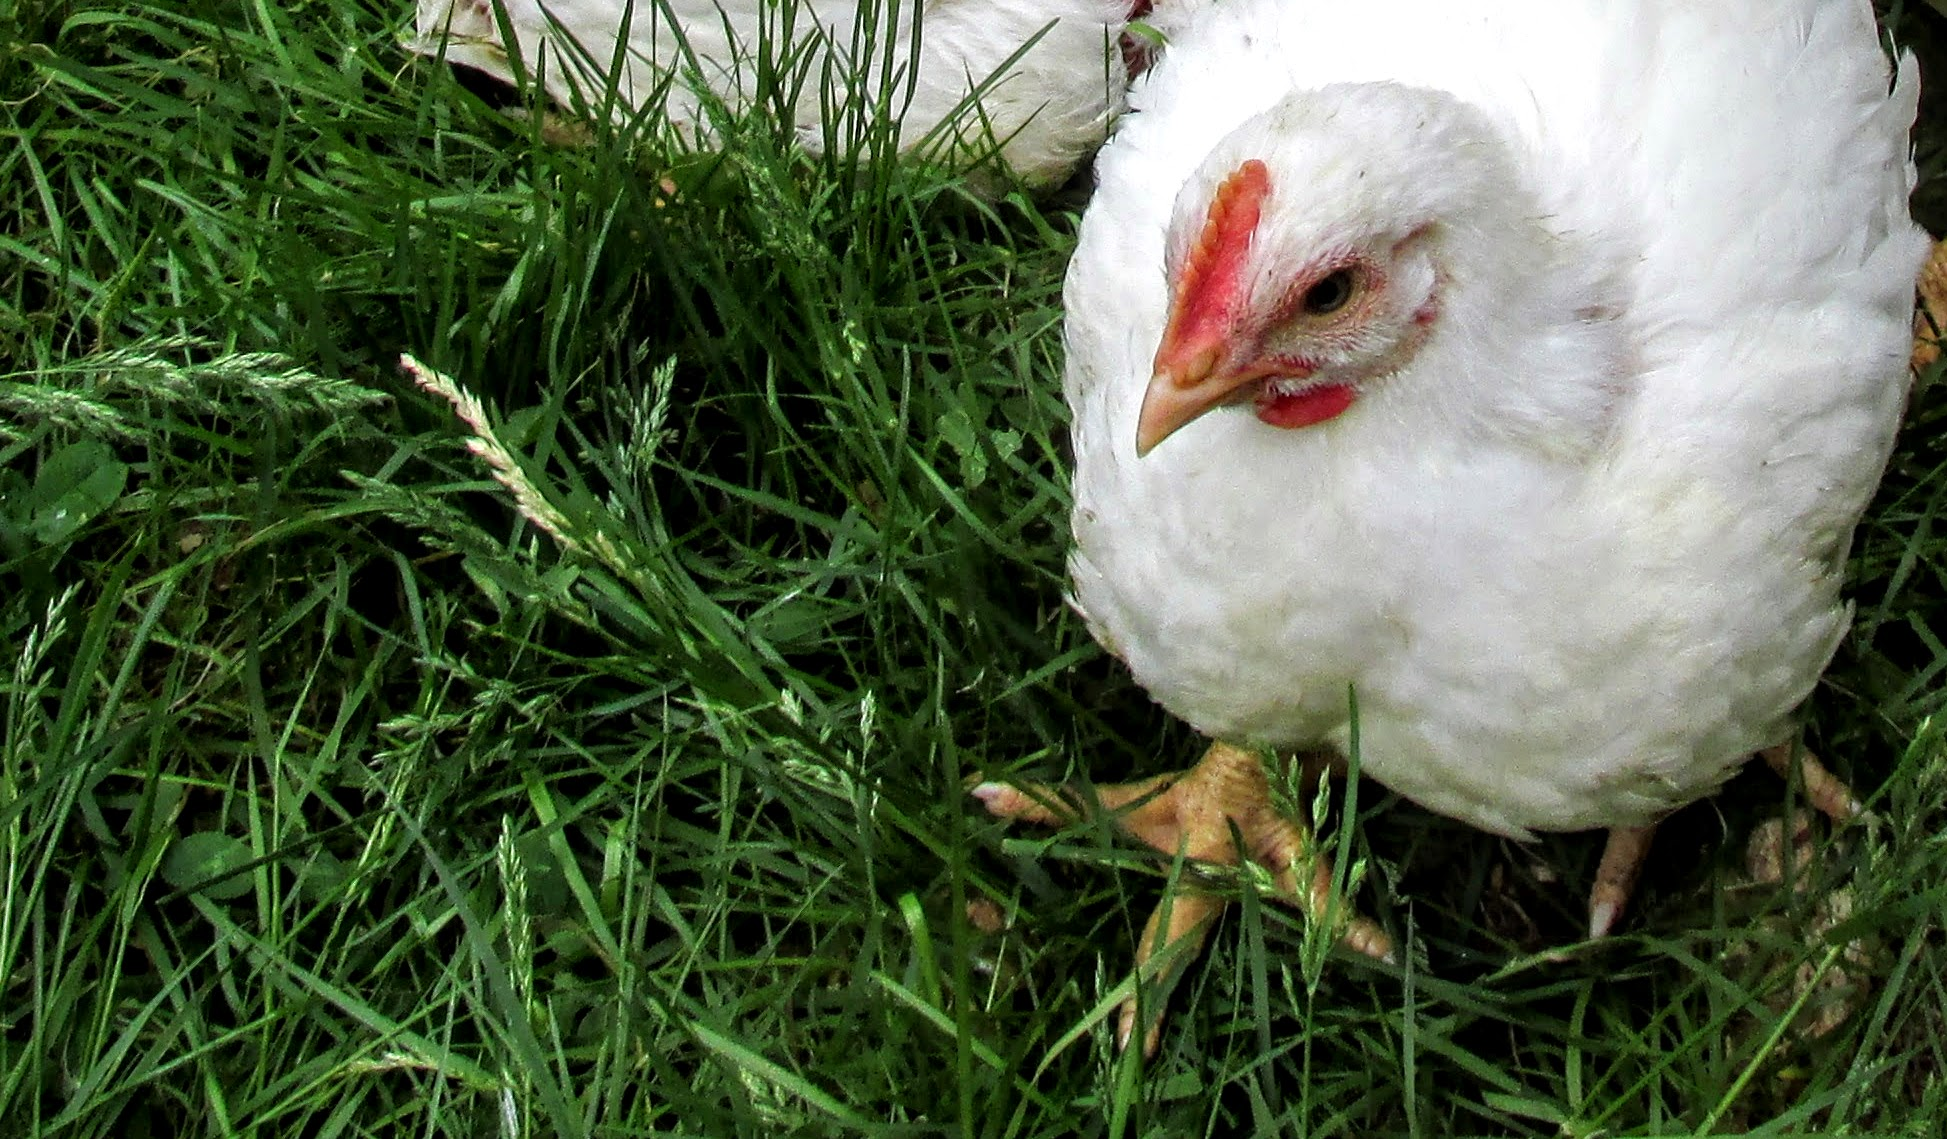 Slowing down fast growing chicken to improve bird health and get pasture raised broiler on lush grass nvjuhfo Image collections